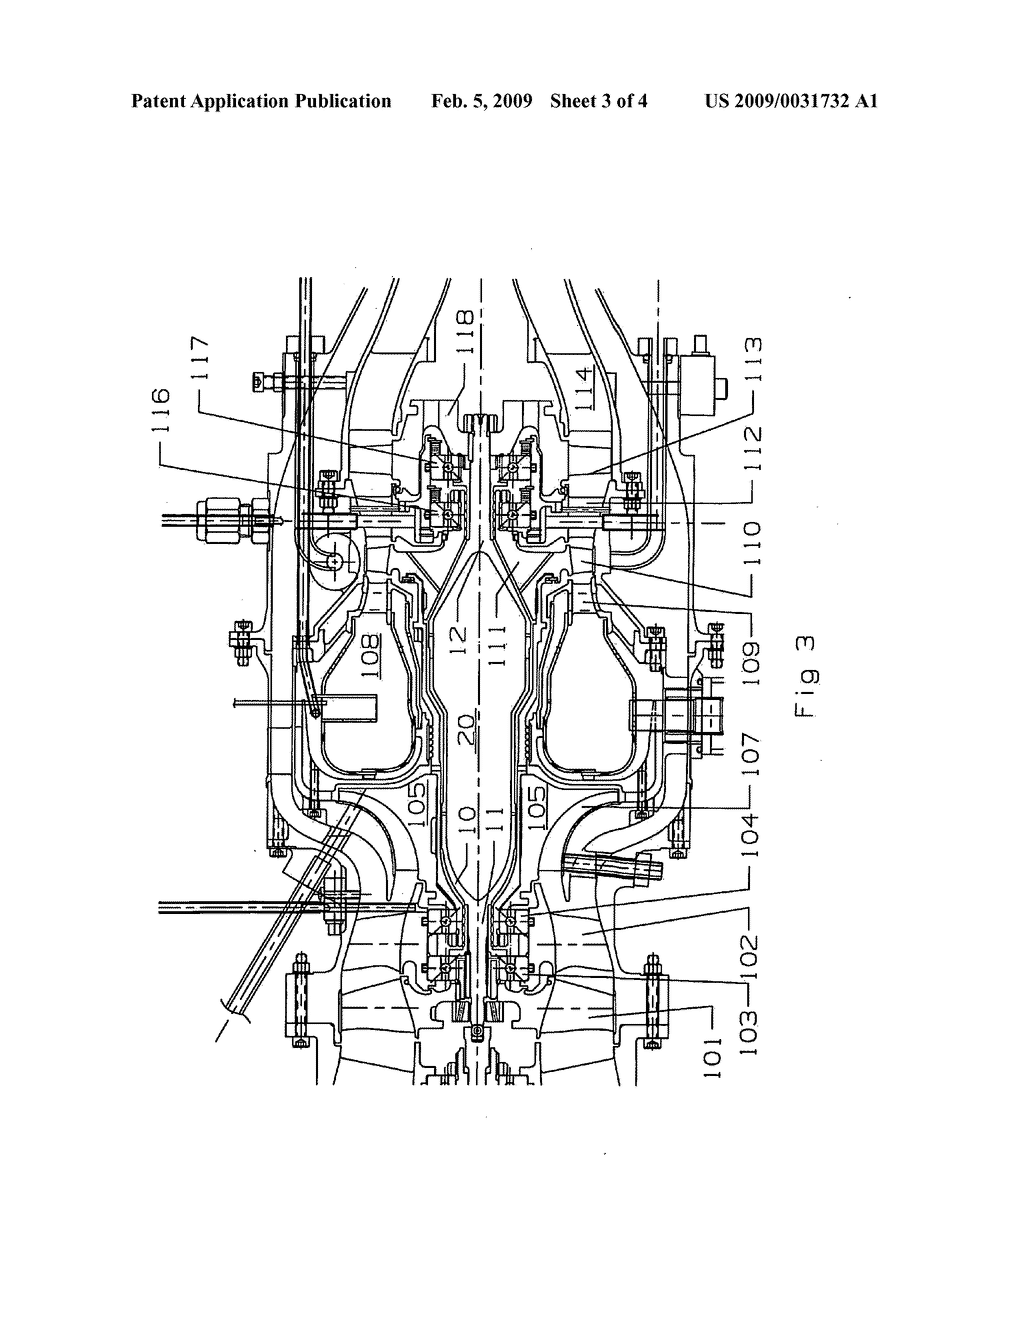 4 H Small Engine Diagram Wiring Library Gas Low Speed Rotor Shaft For A Twin Spool Turbine Schematic